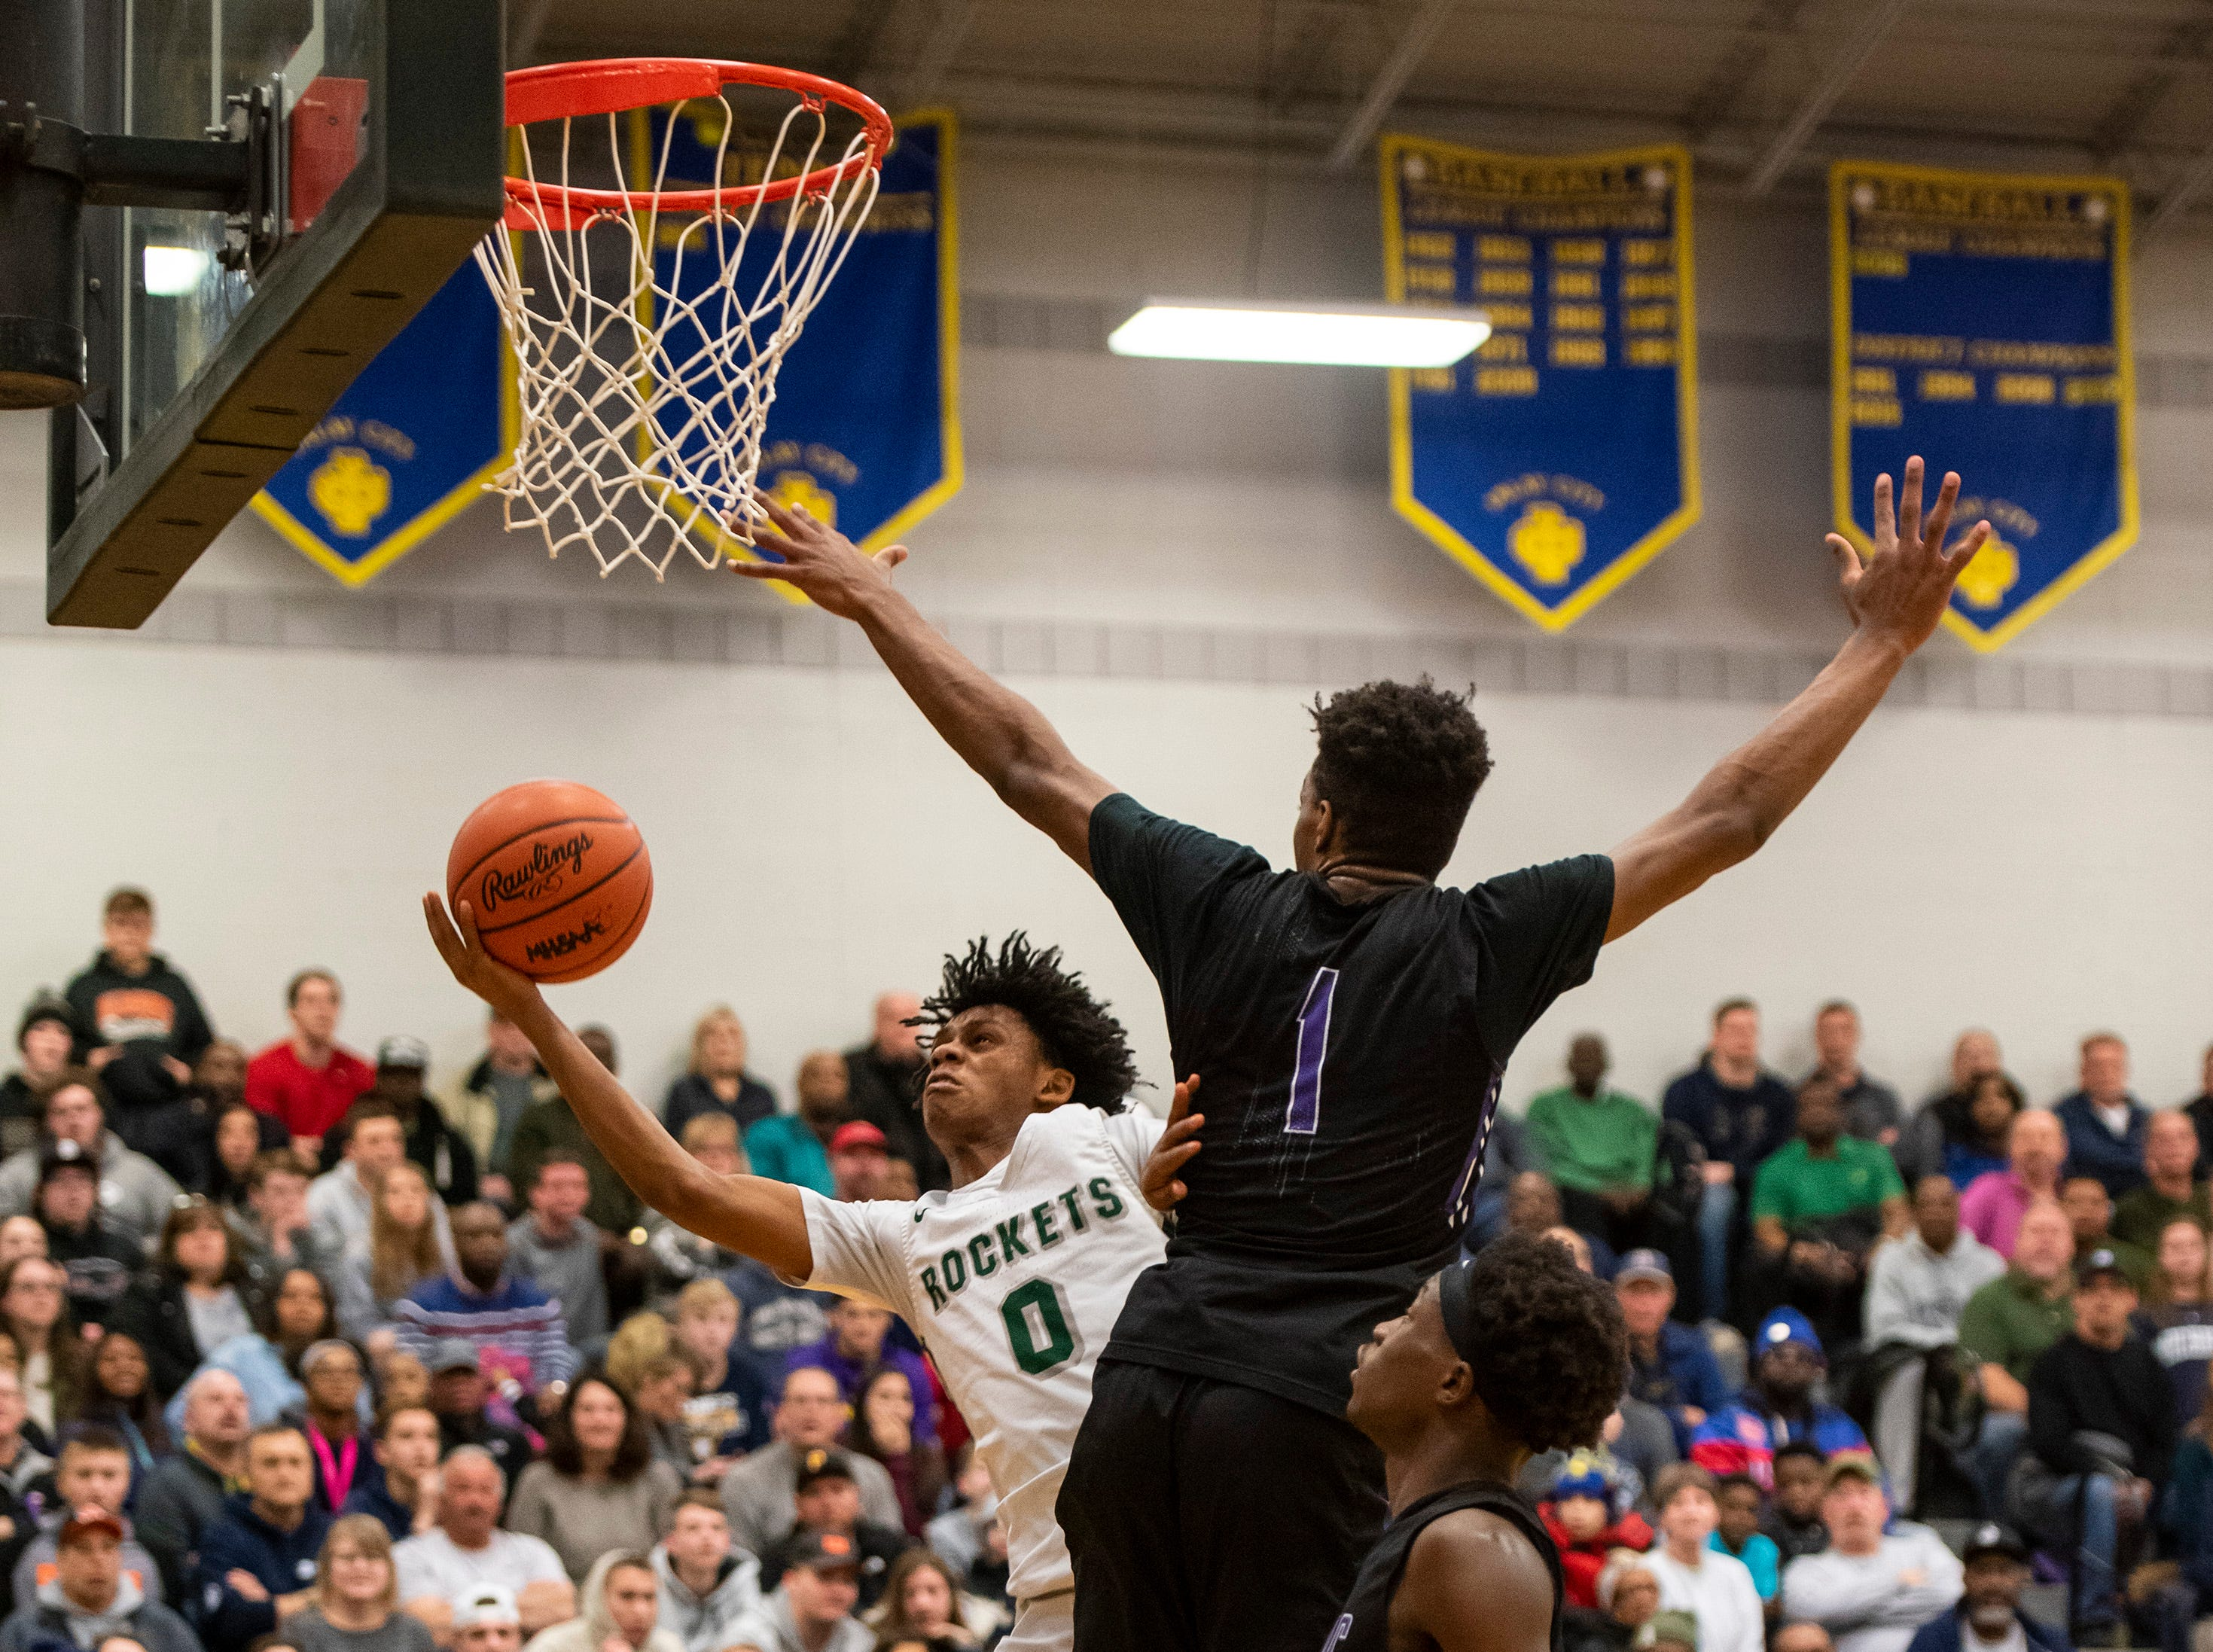 Pontiac's Aiden Rubio (1) jumps to attempt to block New Haven's Ronald Jeffery III in the MHSAA Division 2 regional basketball finals Thursday, March 7, 2019 at Imlay City High School.